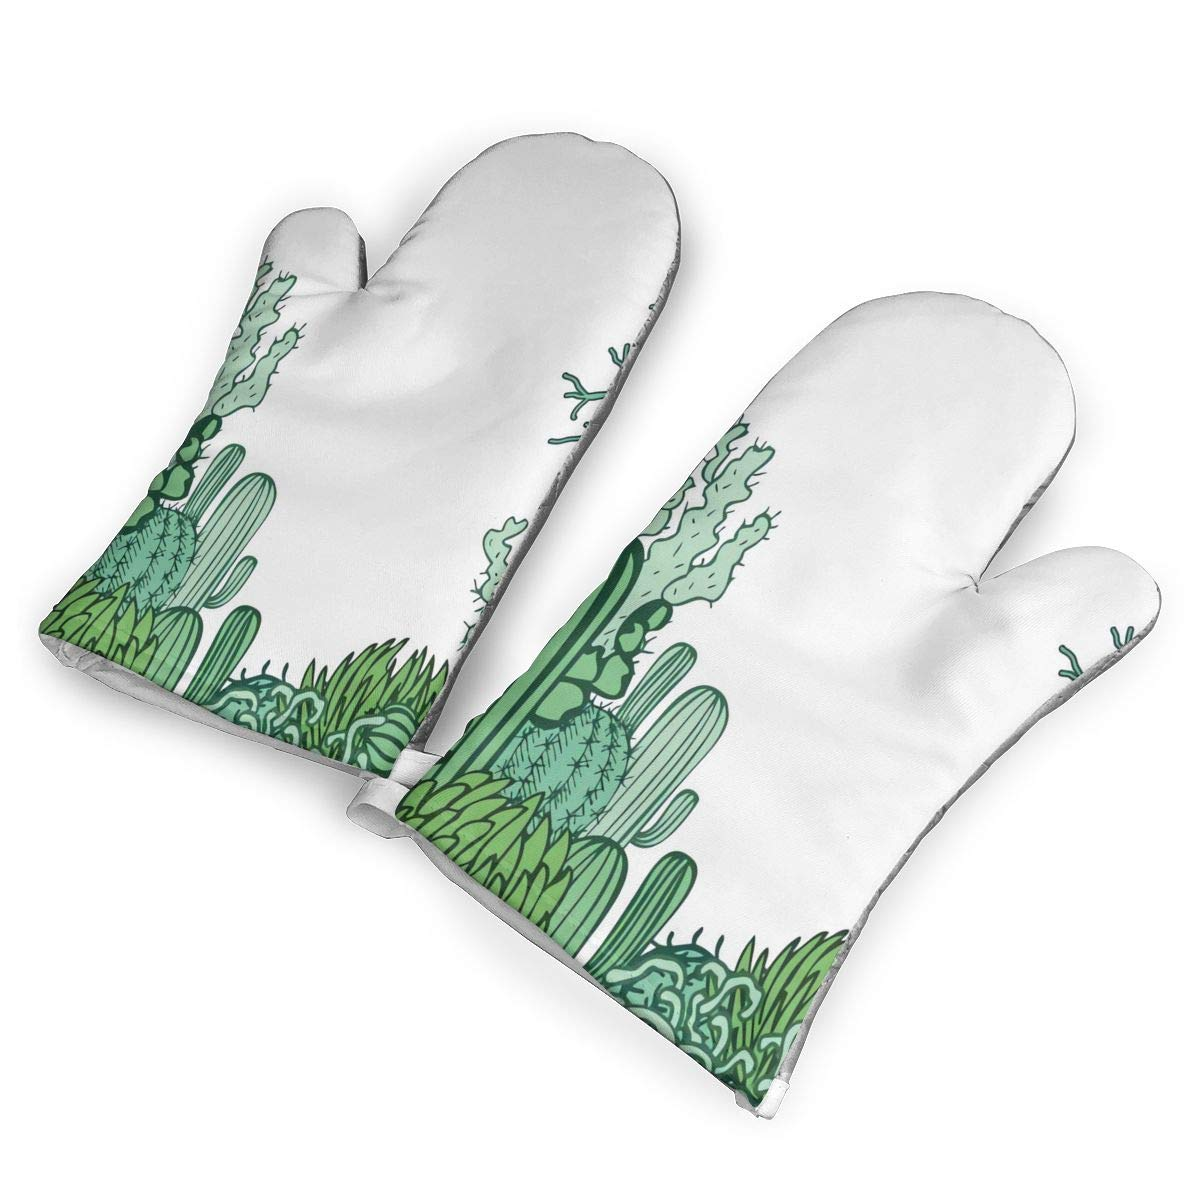 not Arizona Desert Themed Doodle Cactus Oven Mitts with Polyester Fabric Printed Pattern,1 Pair of Heat Resistant Oven Gloves for Cooking,Baking,Grilling,Barbecue Potholders